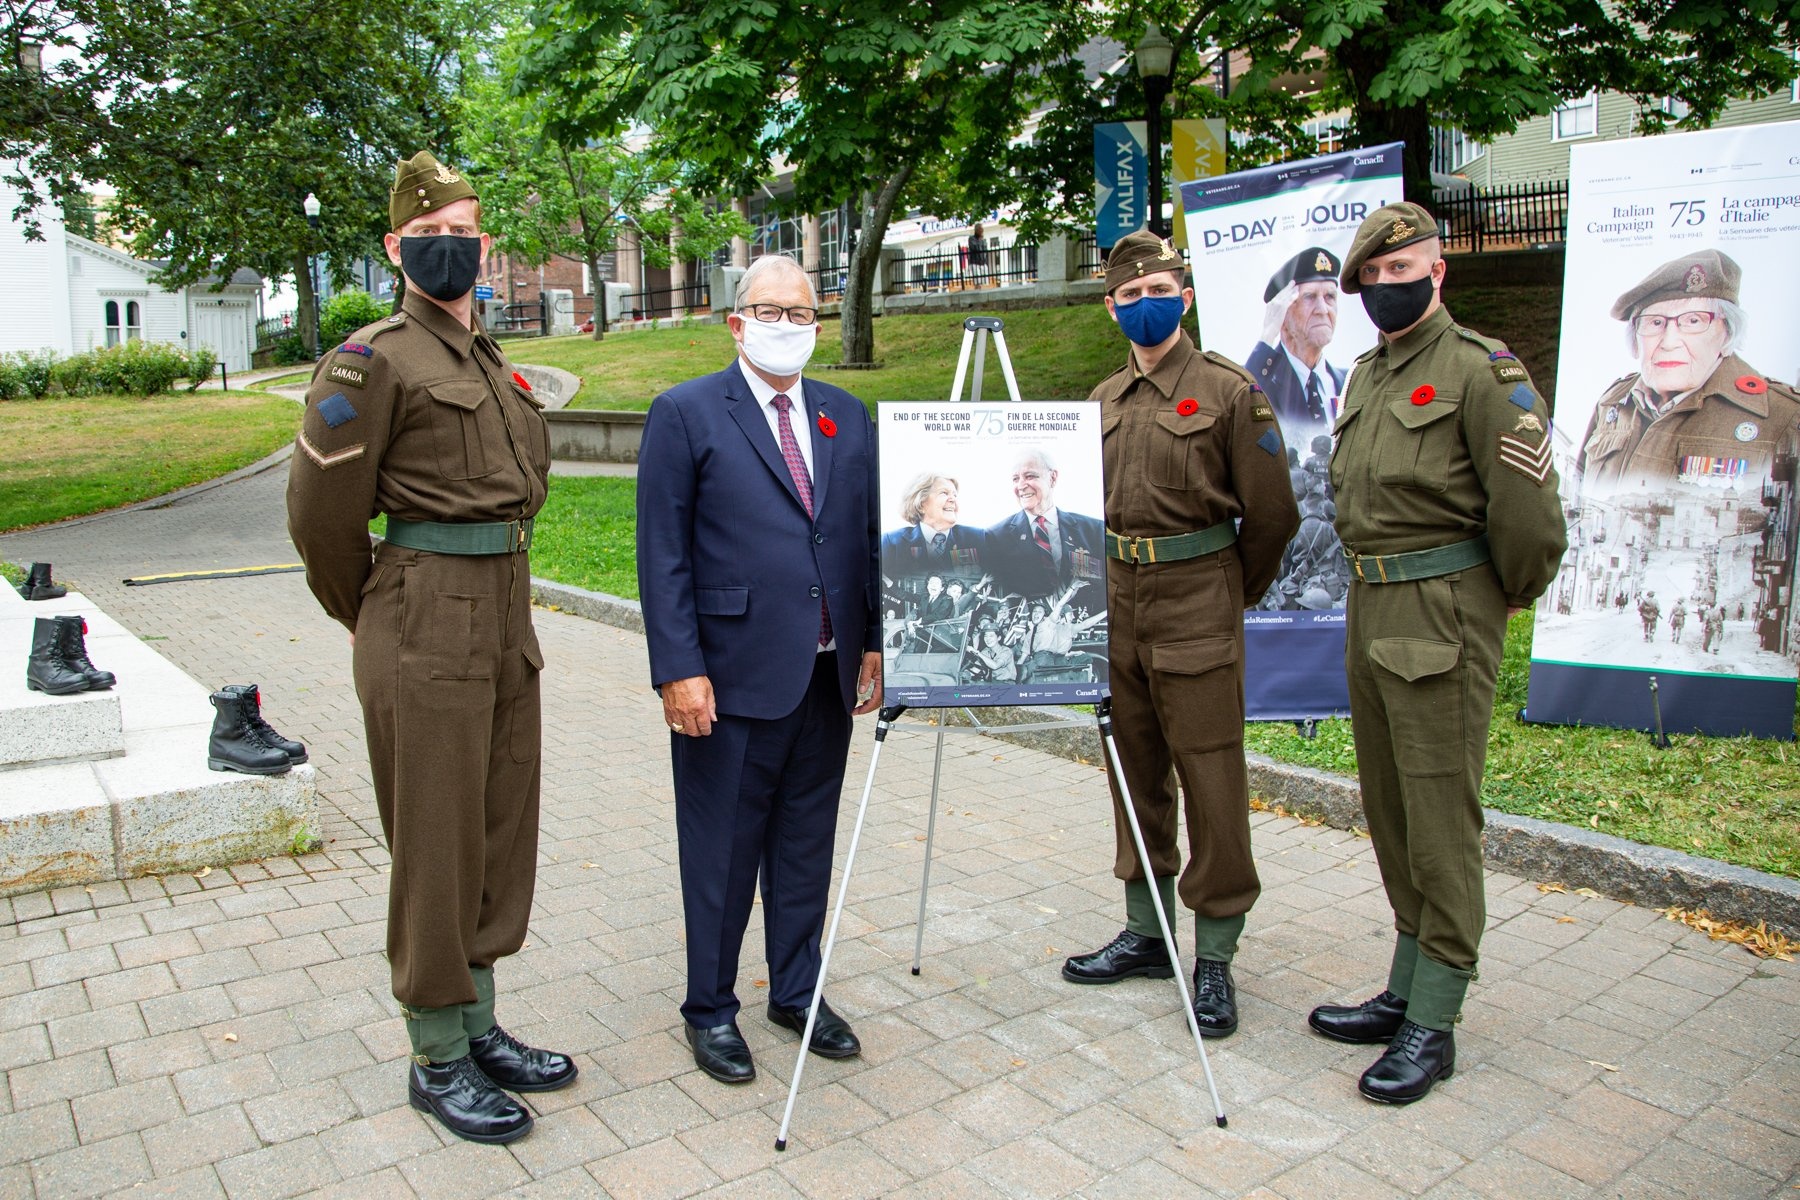 V-J Day 75th anniversary commemorated in Halifax